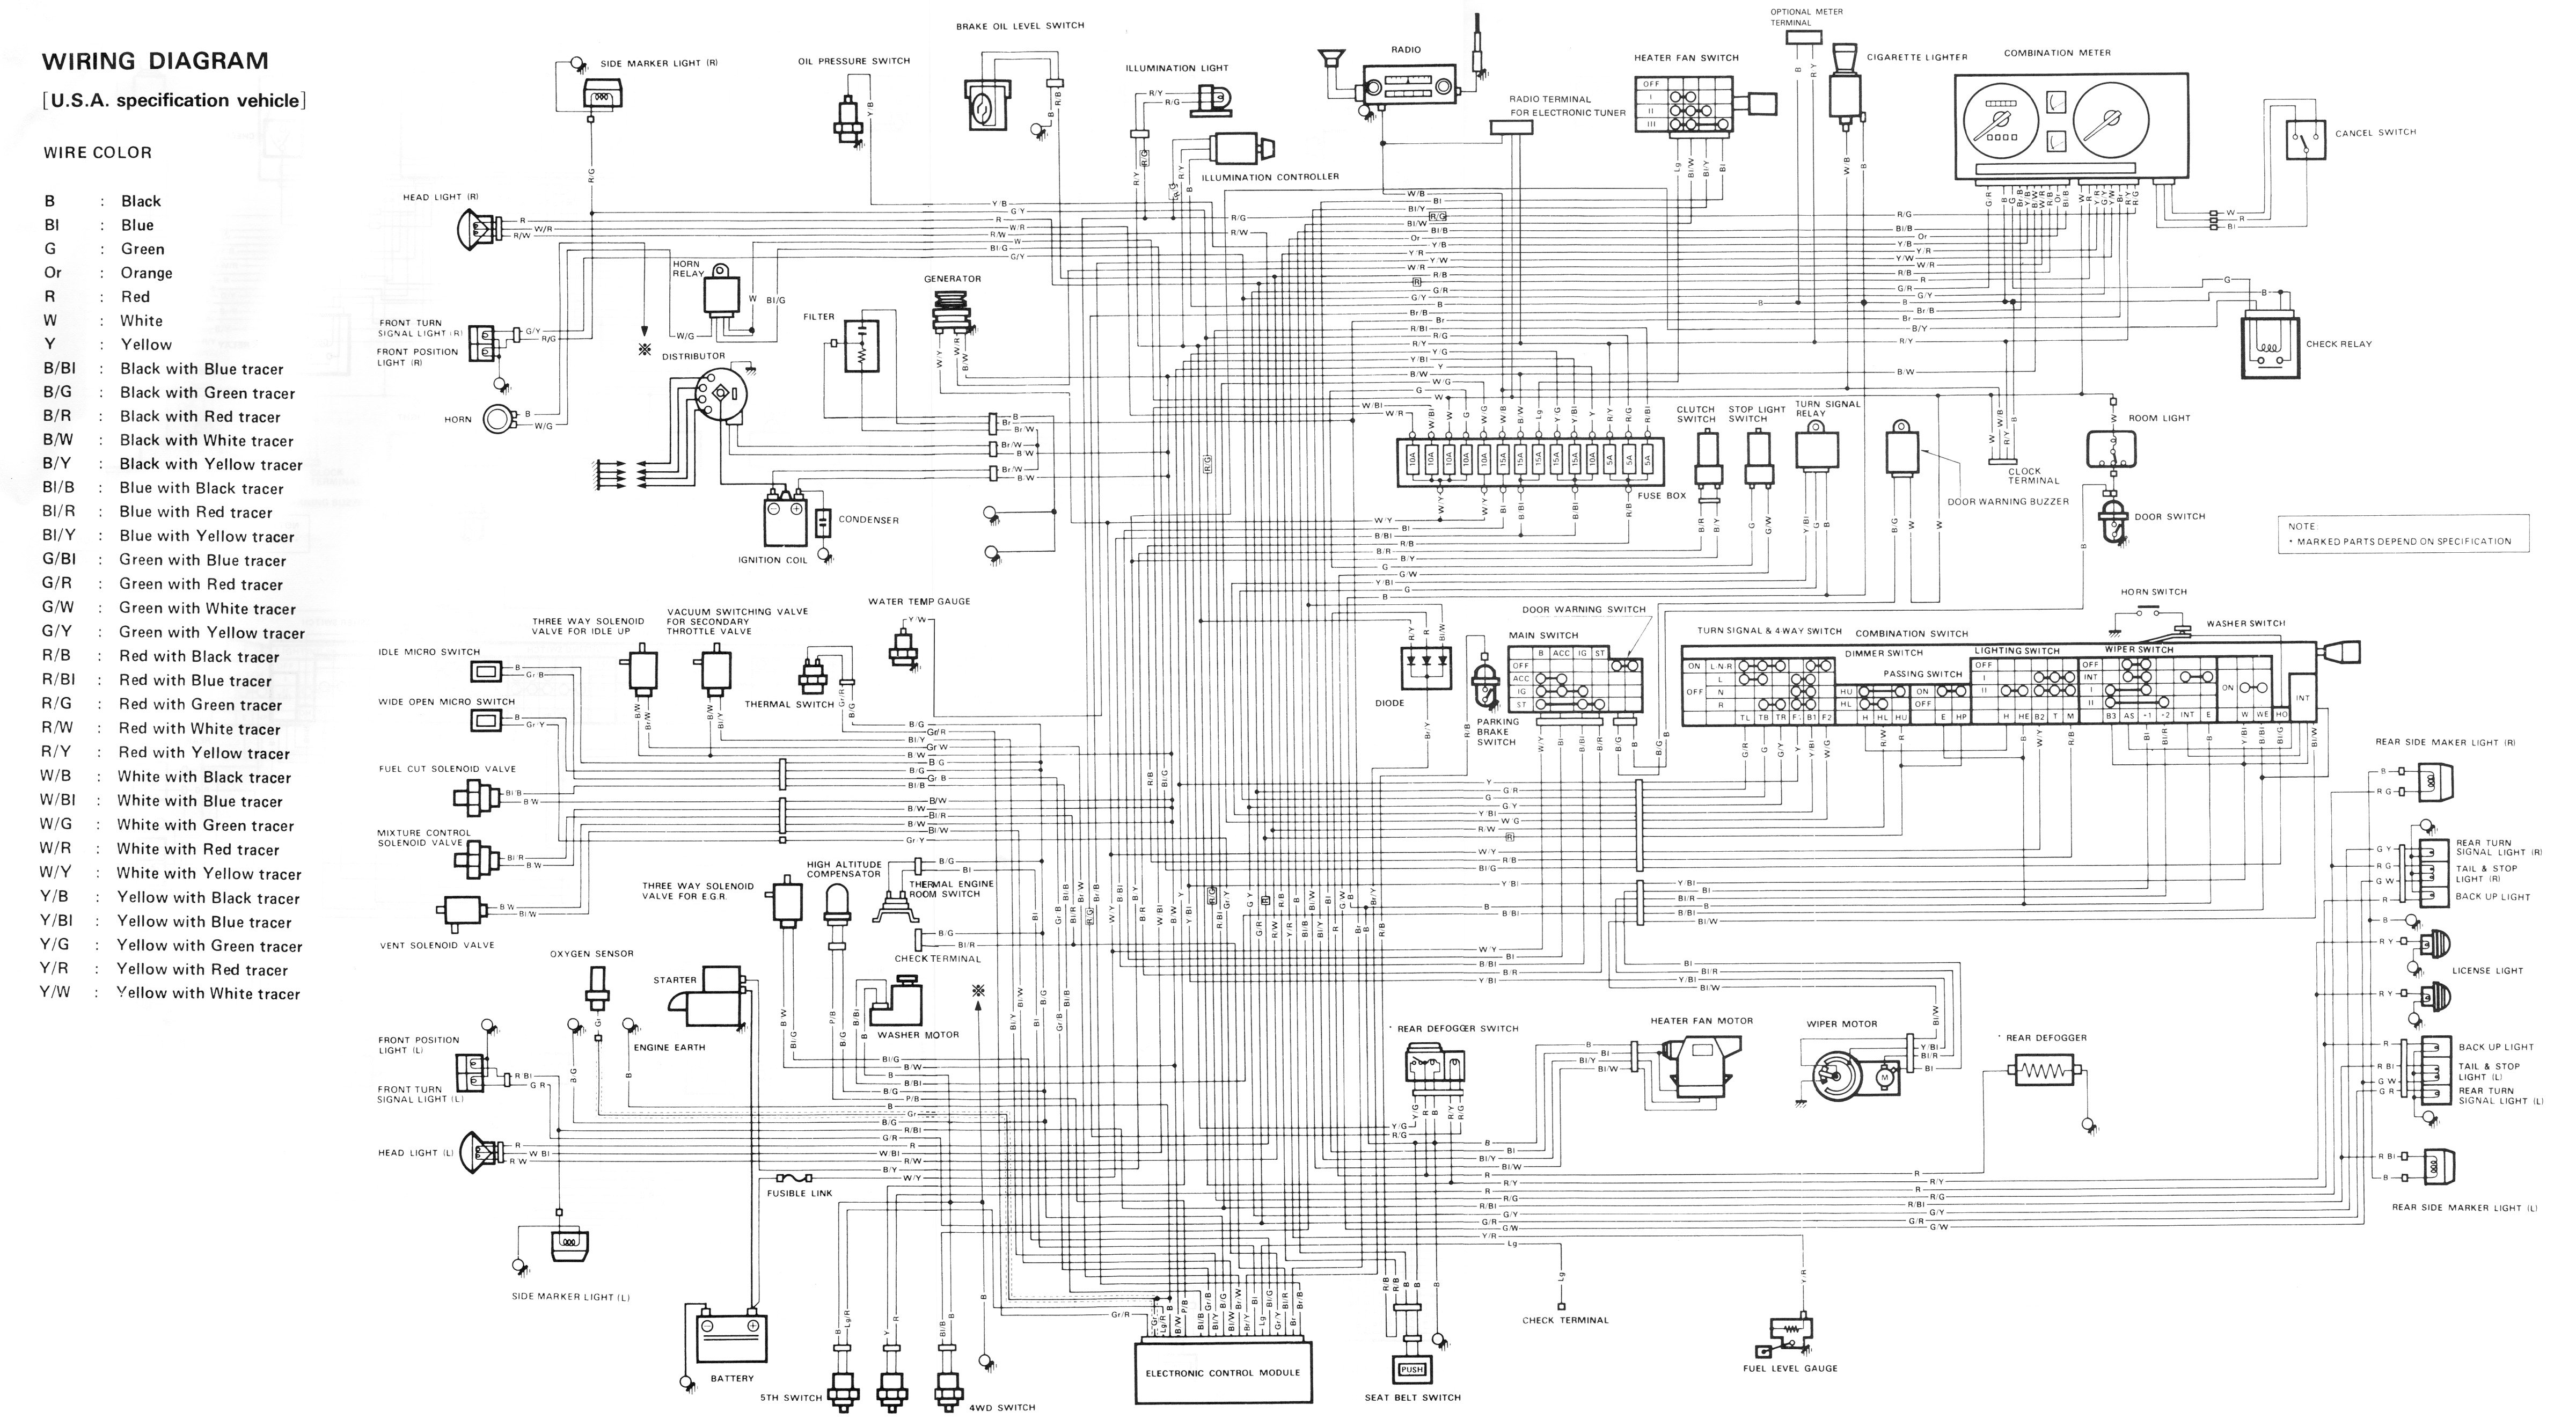 samurai_wiring_diagram?resize=665%2C366 geo metro lsi engine diagrams mercury villager engine wiring 1998 chevy metro wiring diagram at mifinder.co